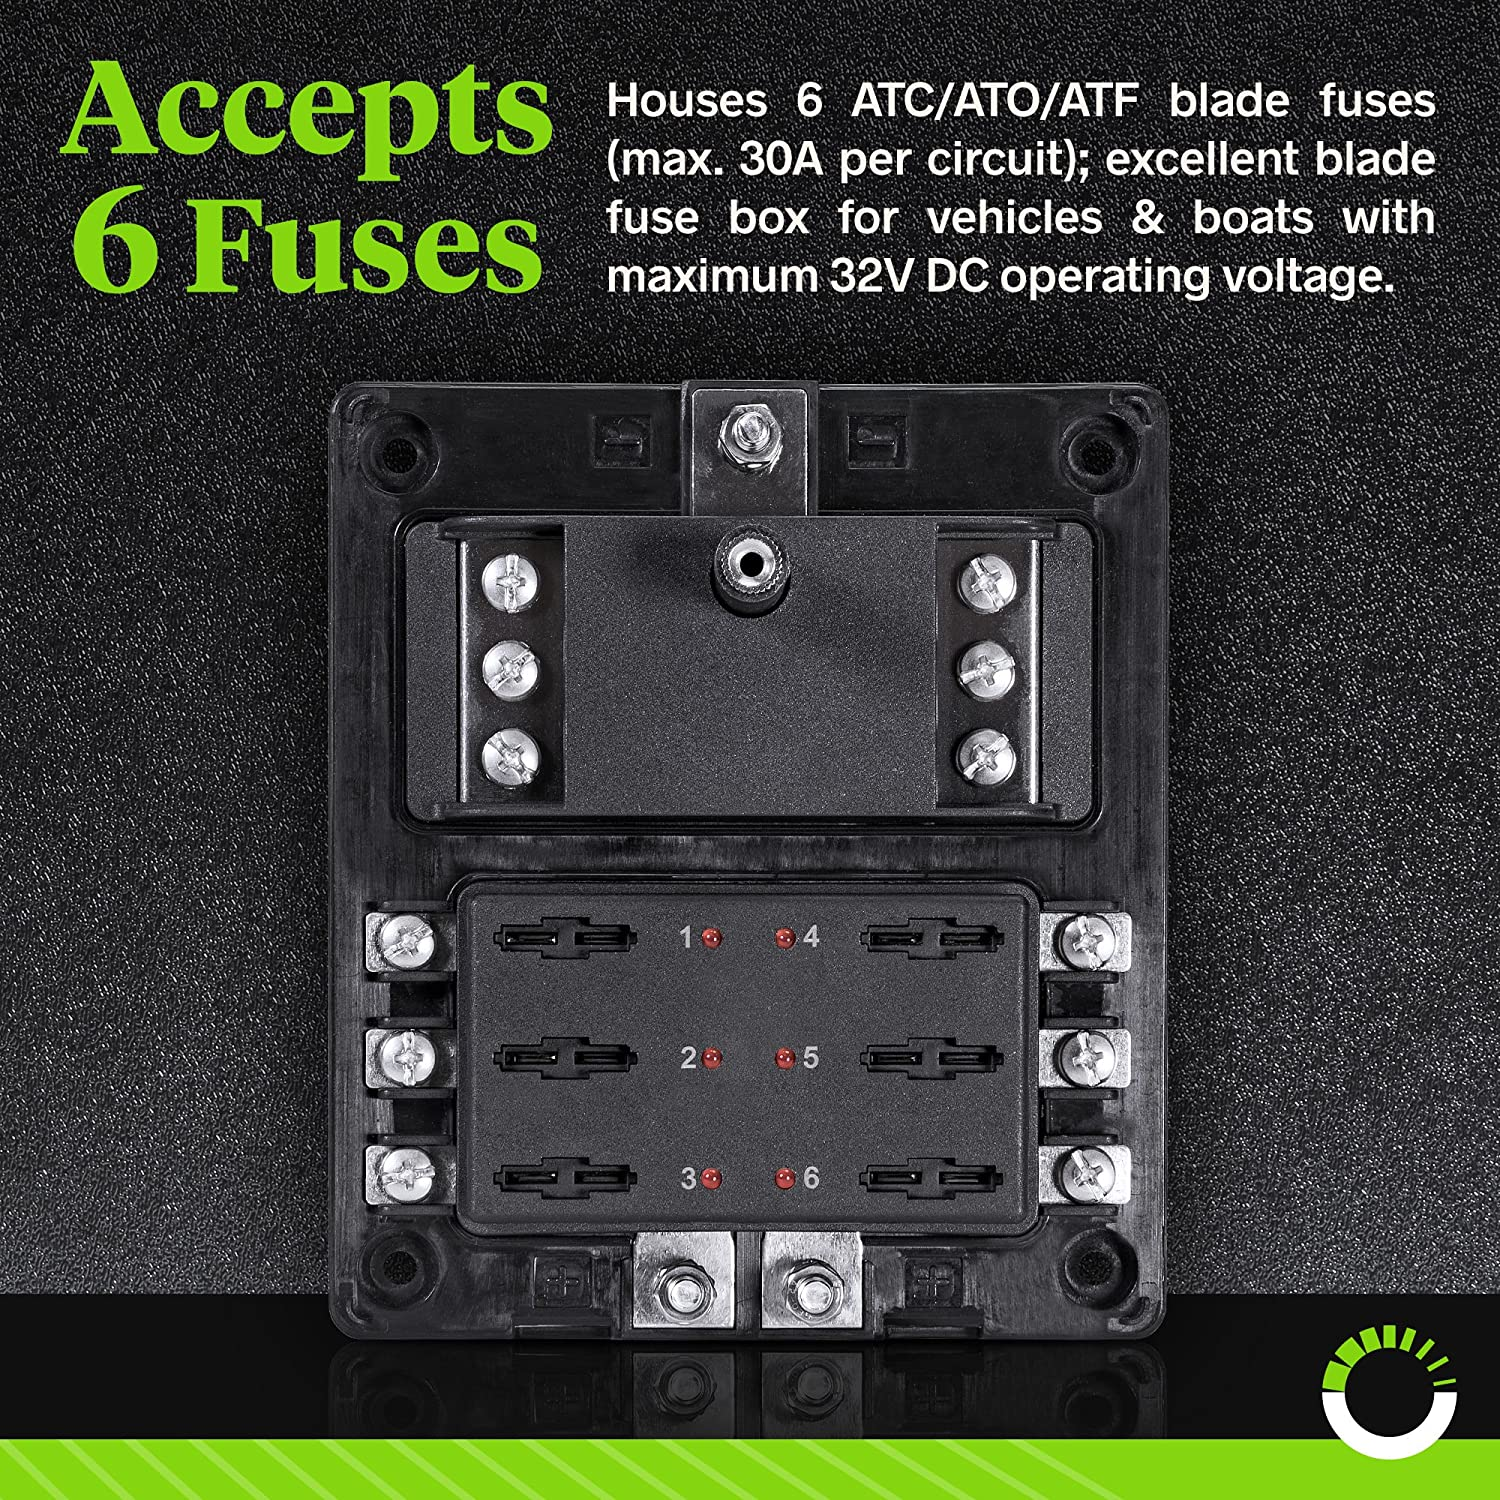 6 Circuit Blade Fuse Block With Thumbscrew Cover Led Way Car Automotive Atc Ato Box Indicator Negative Ground Connections Dual Independent Positive